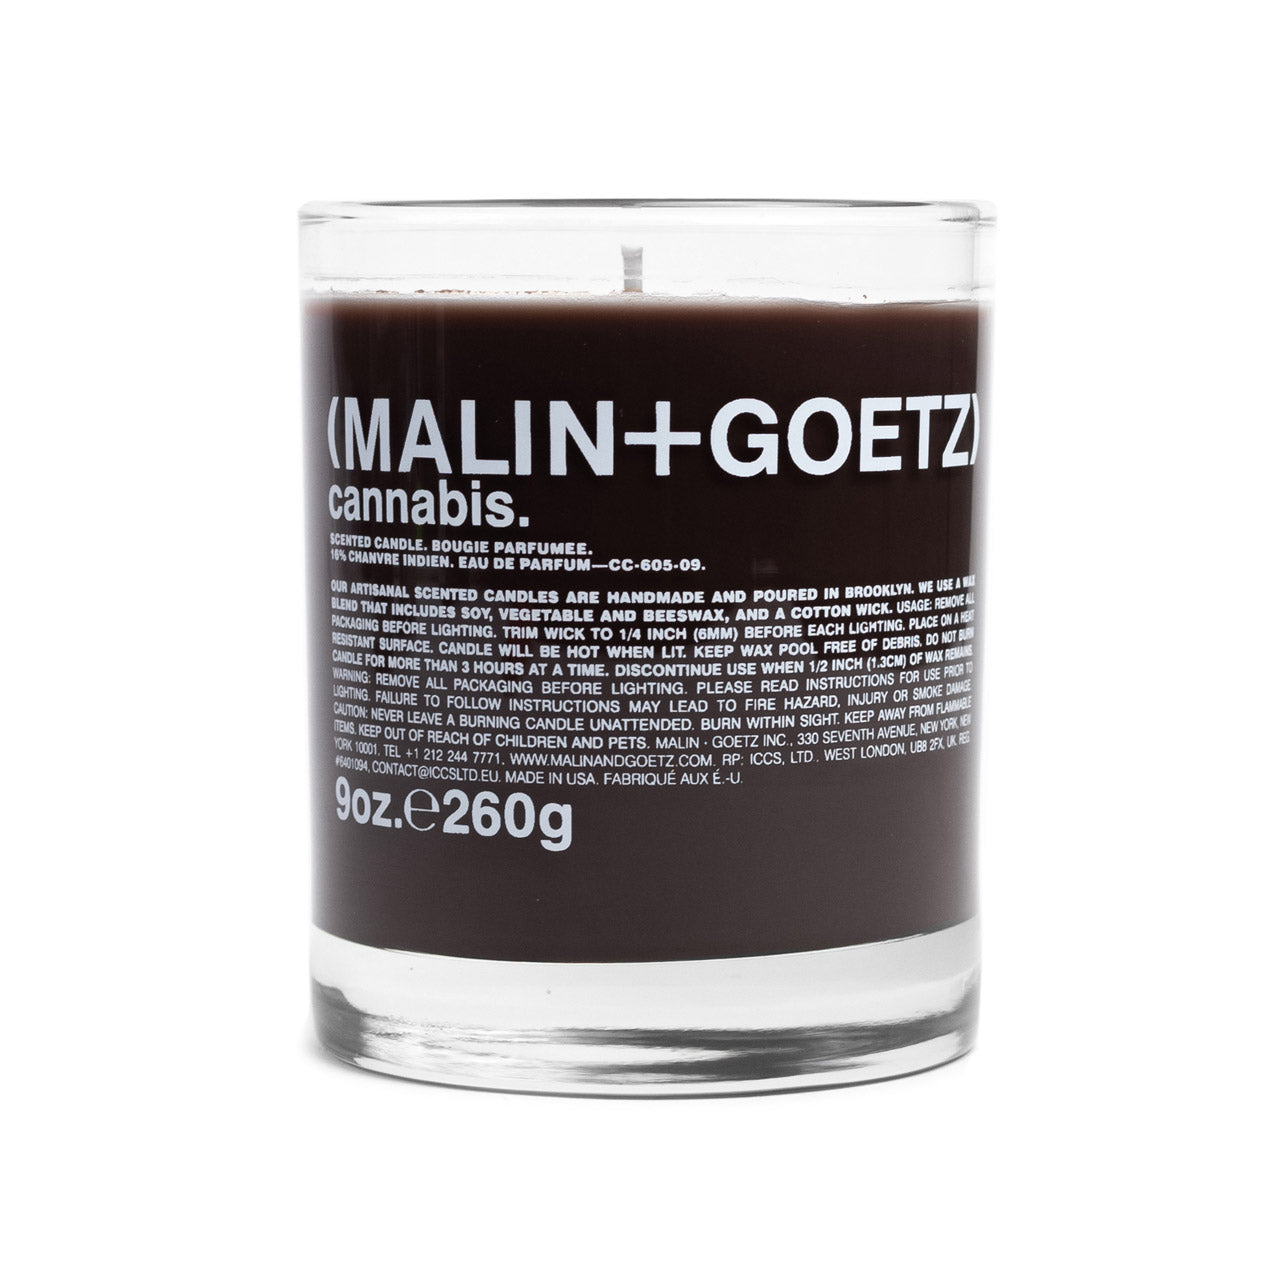 Malin+Goetz Candles